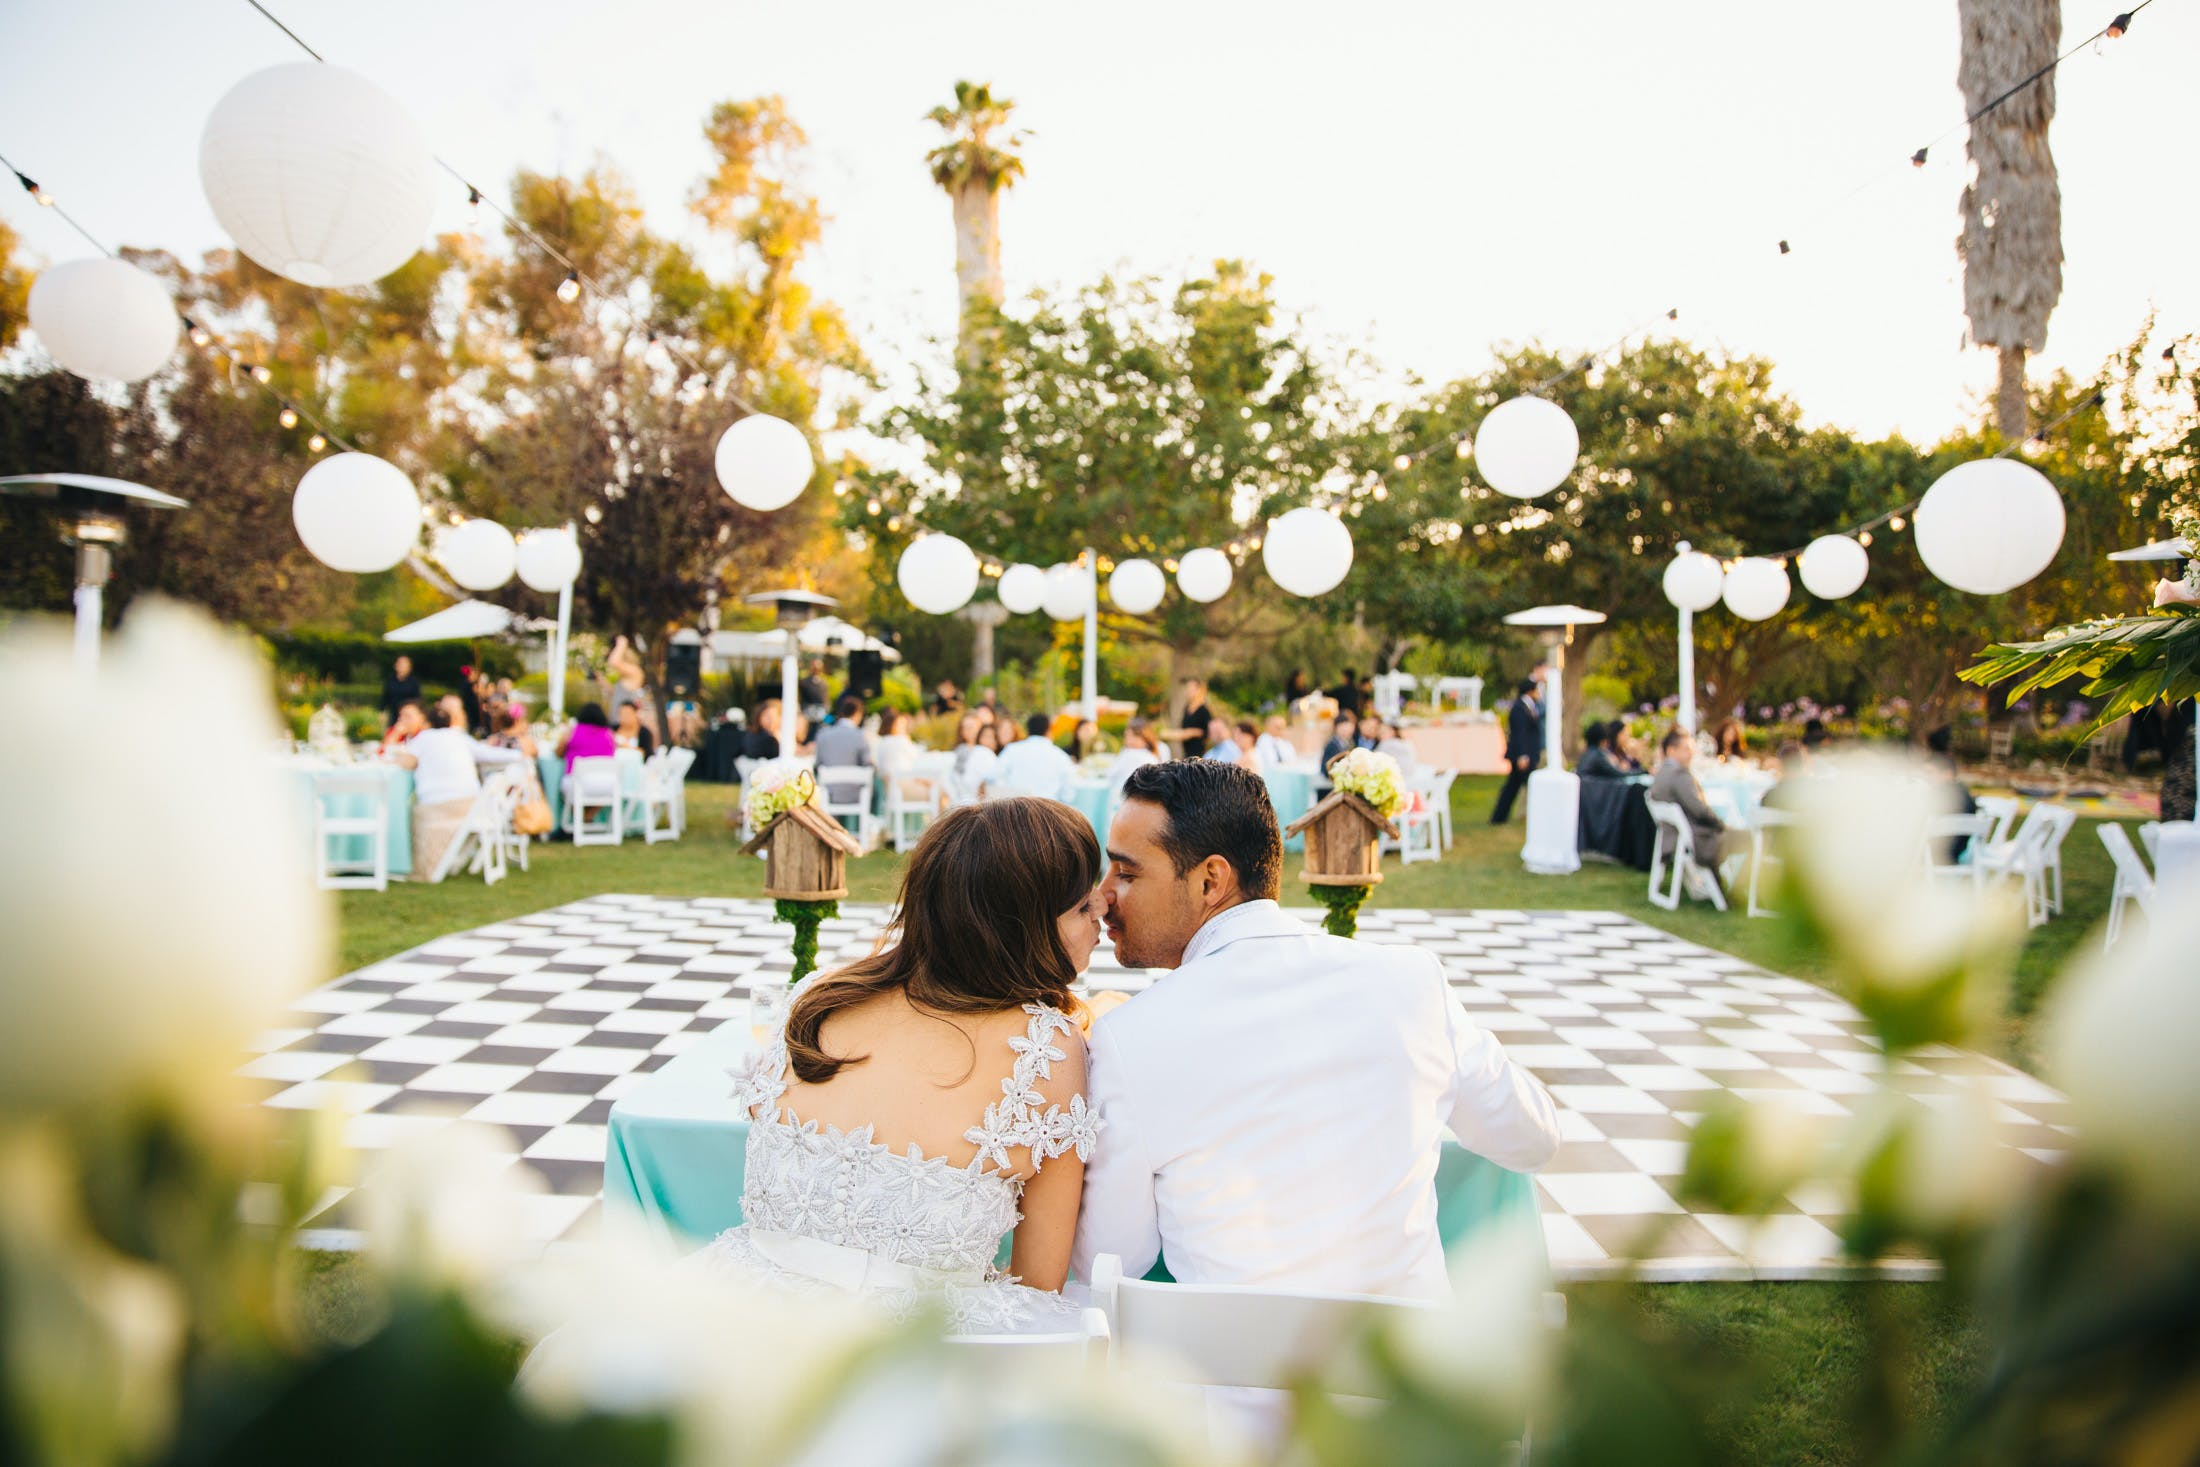 los angeles botanic garden wedding venue